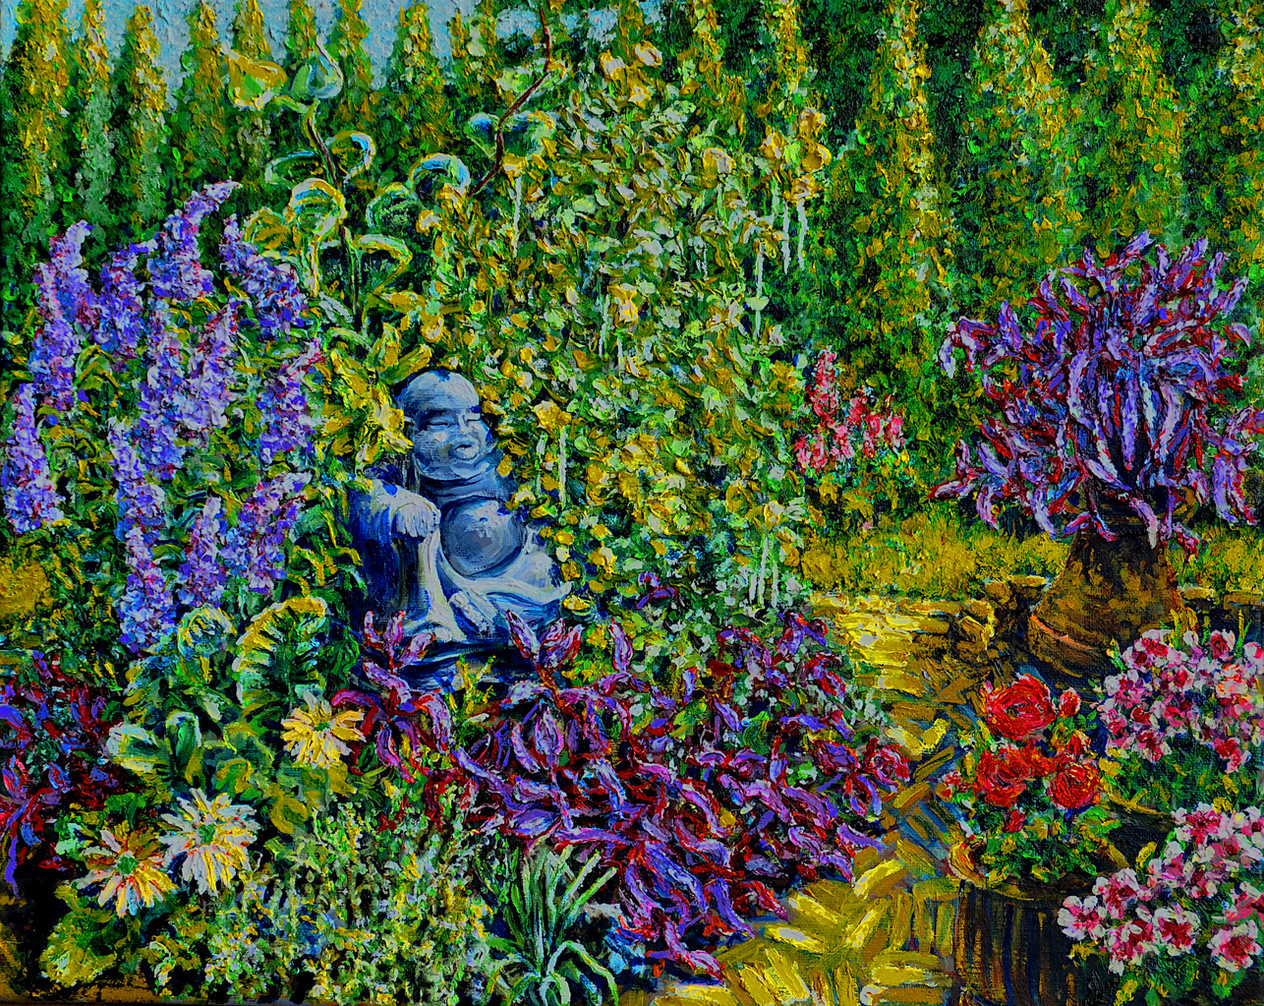 Buddha In Garden $450, 16 x 20 in. Oil on Canvas